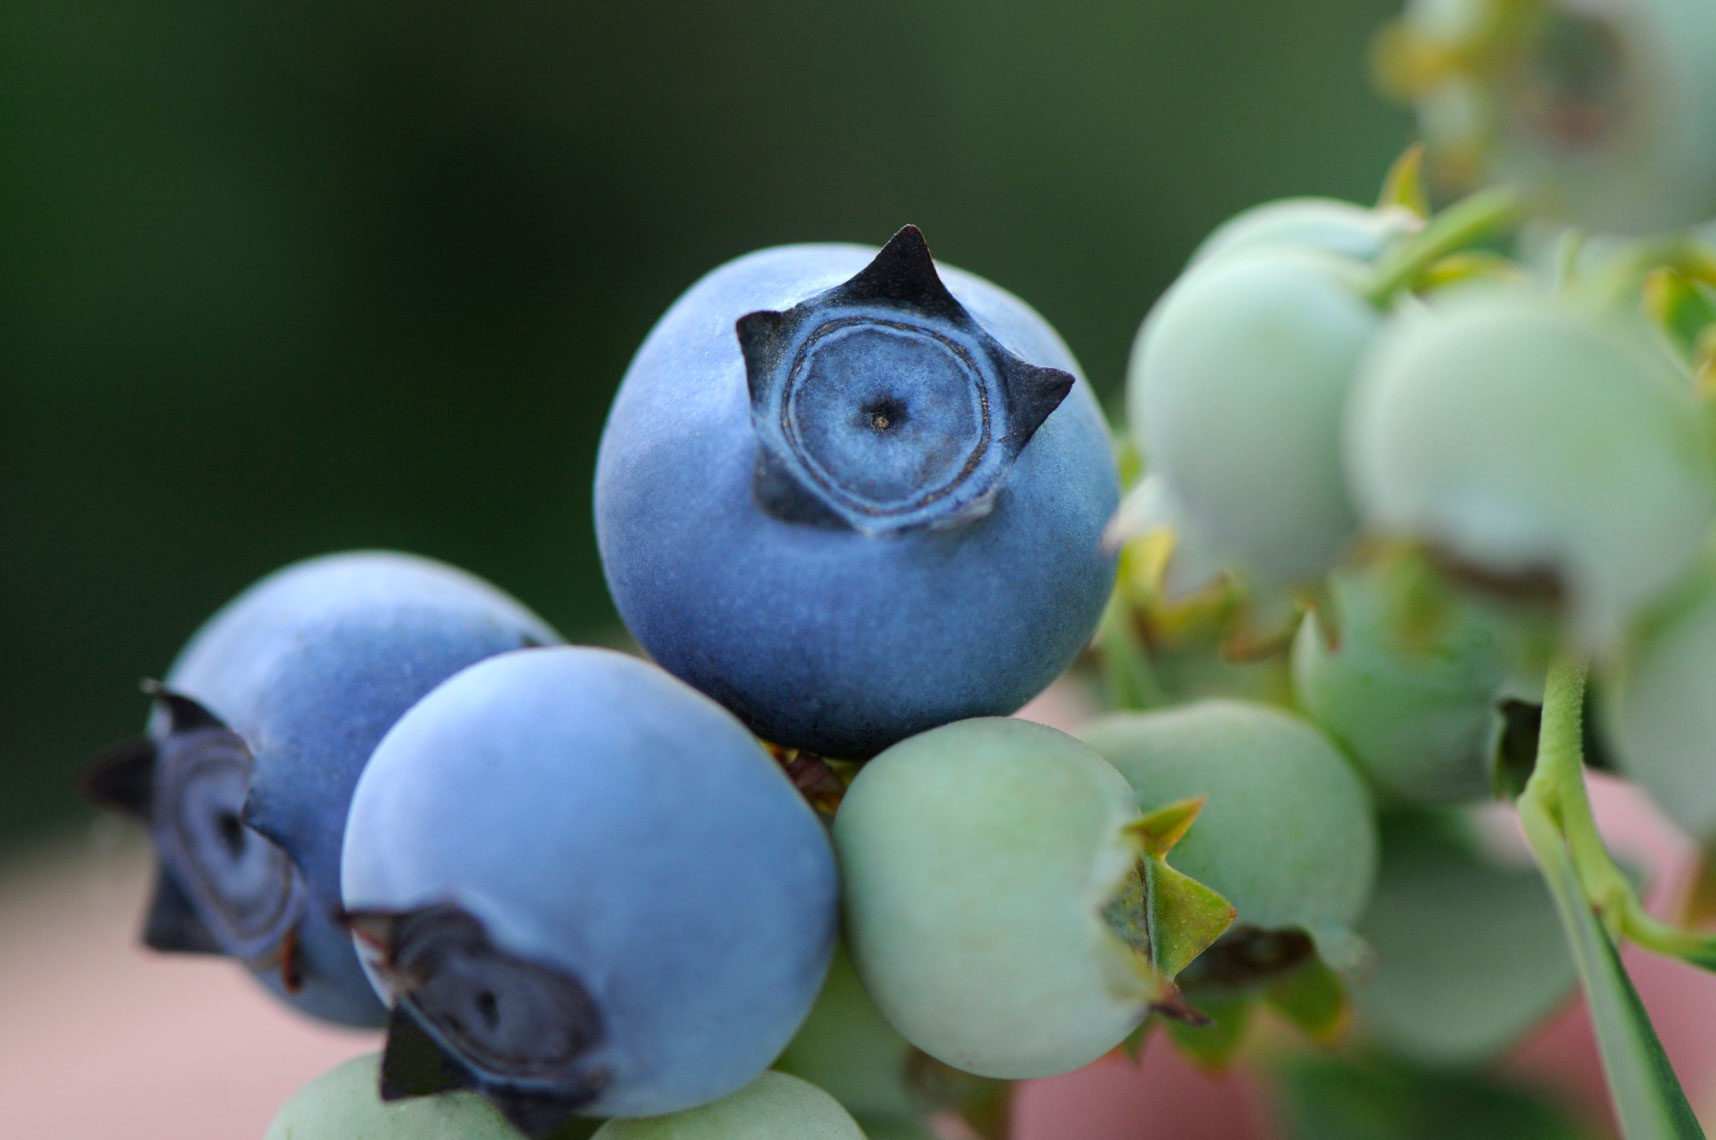 Blueberries-and-green-fruit-on-bushes-at-sunrise-in-Delano-California-by-farming-photographer-Joe-Atlas..